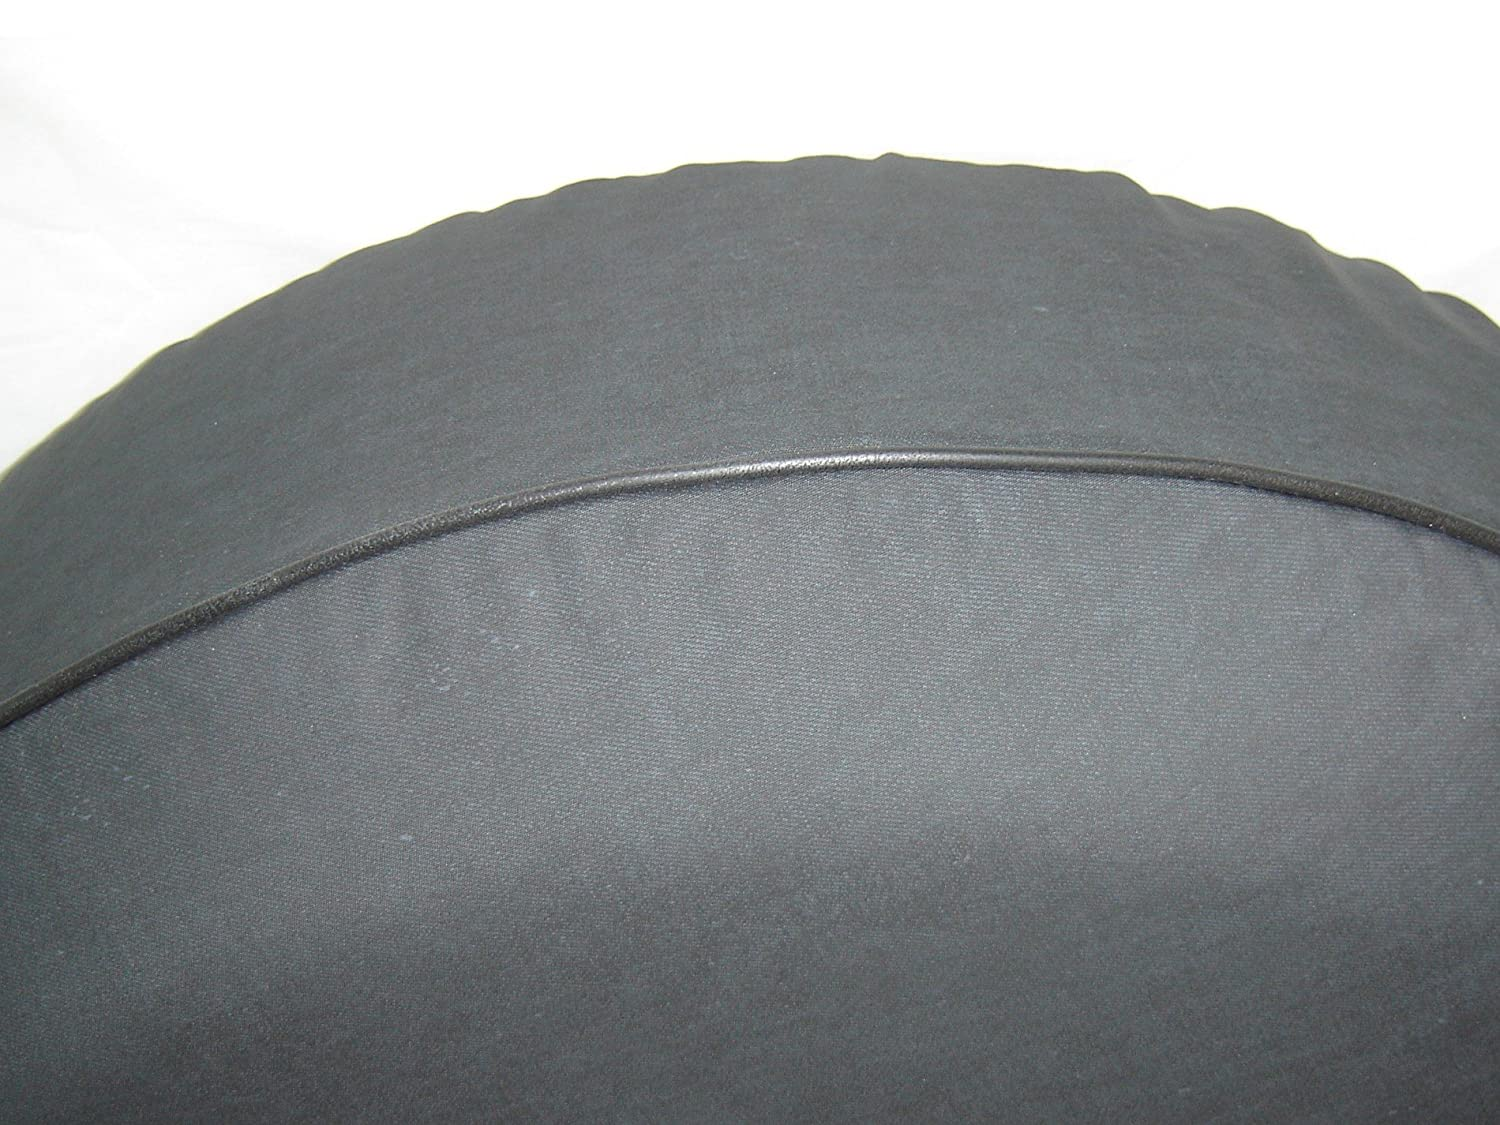 SpareCover BR-one-life-37 Brawny Series Black Denim 37 Tire Cover with One Life Design